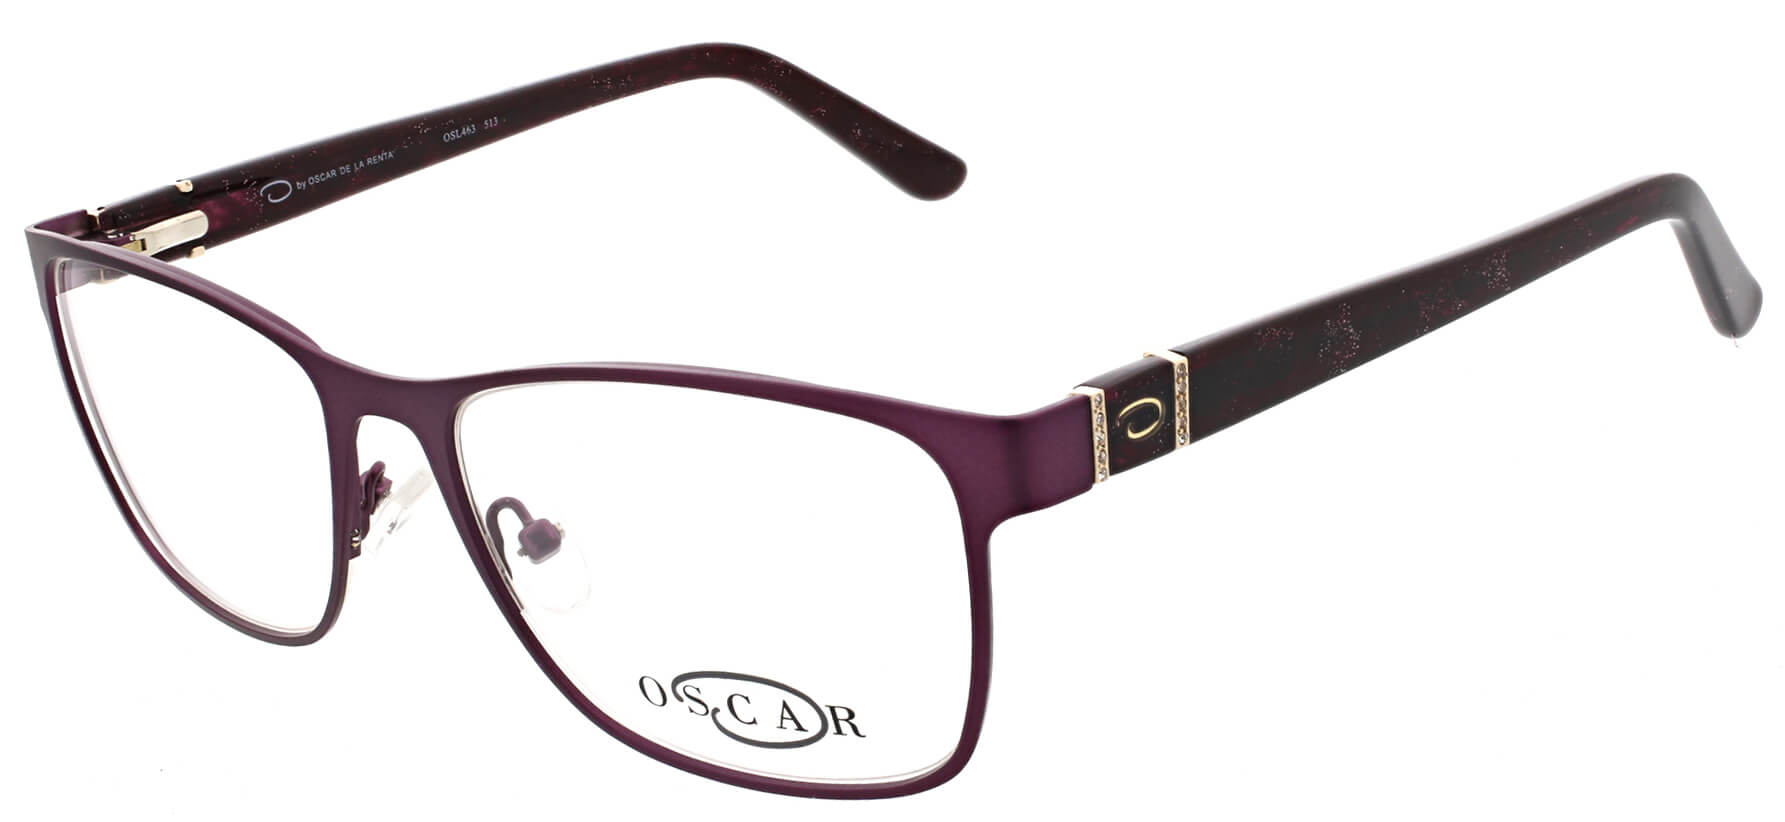 Oscar de la Renta clear frame glasses with red trim and logo